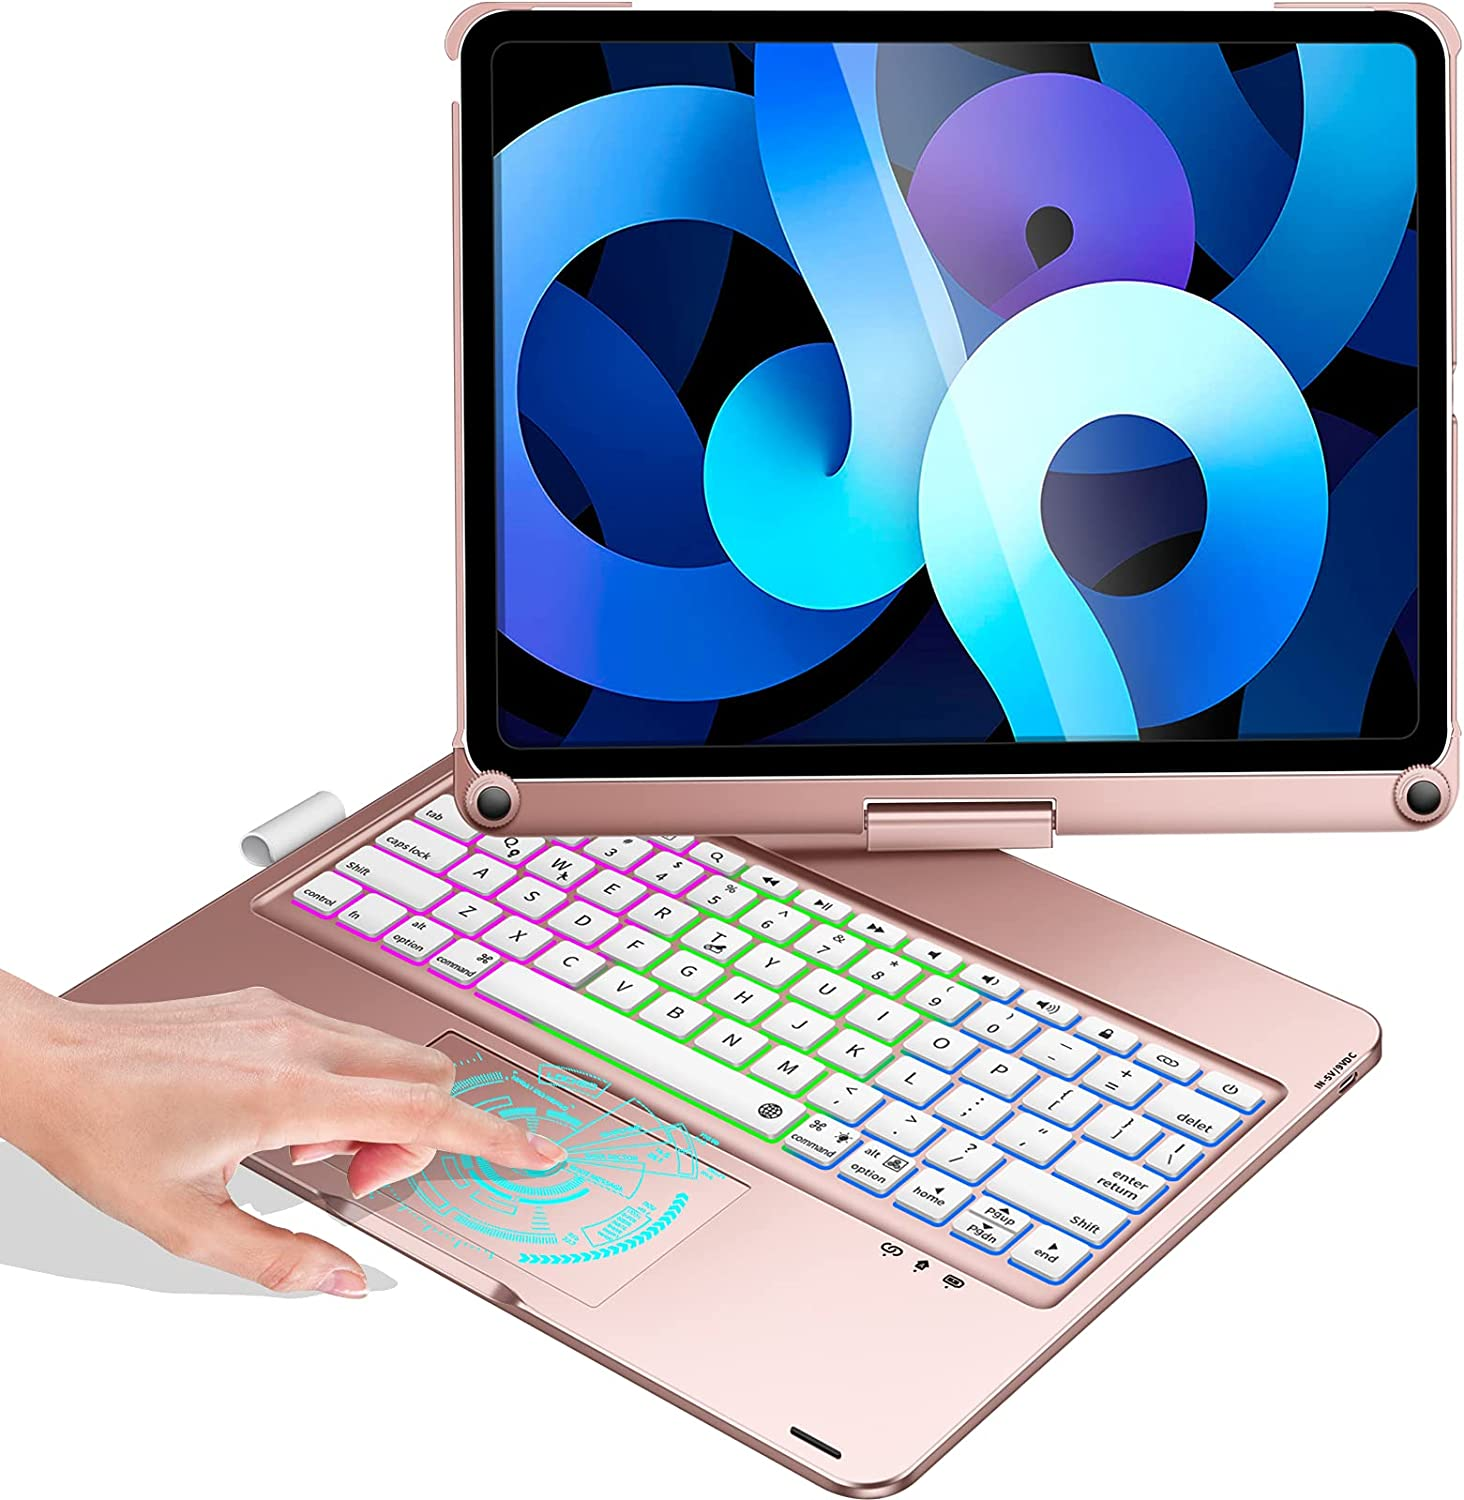 Touchpad Keyboard Case for iPad 10.9-inch Air 4, iPad Pro 11-inch 3rd Gen 2021 / 2nd Gen 2020 / 1st Gen 2018, Compatible with iPad 11/10.9 inch, 360 Rotation, Rainbow Backlights - Rose Gold